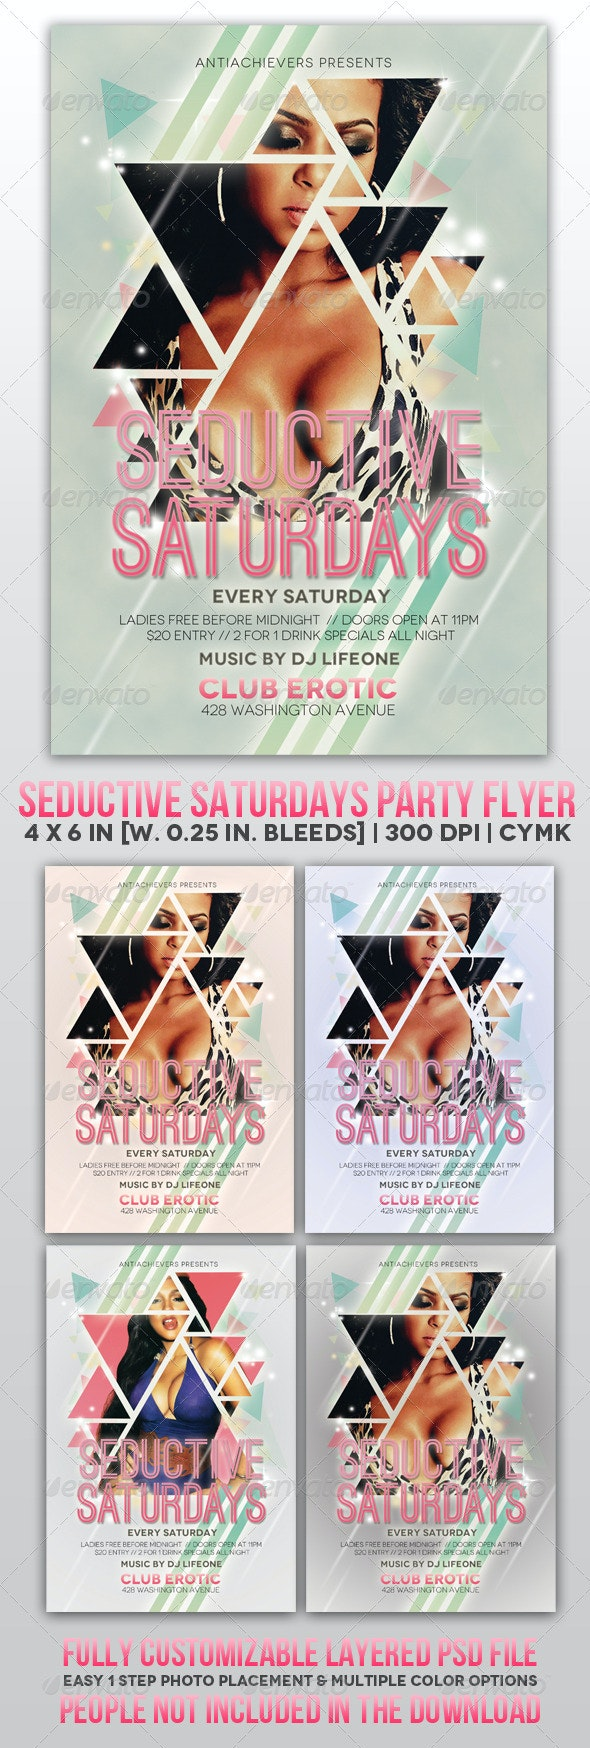 Seductive Saturdays Party Flyer  - Clubs & Parties Events